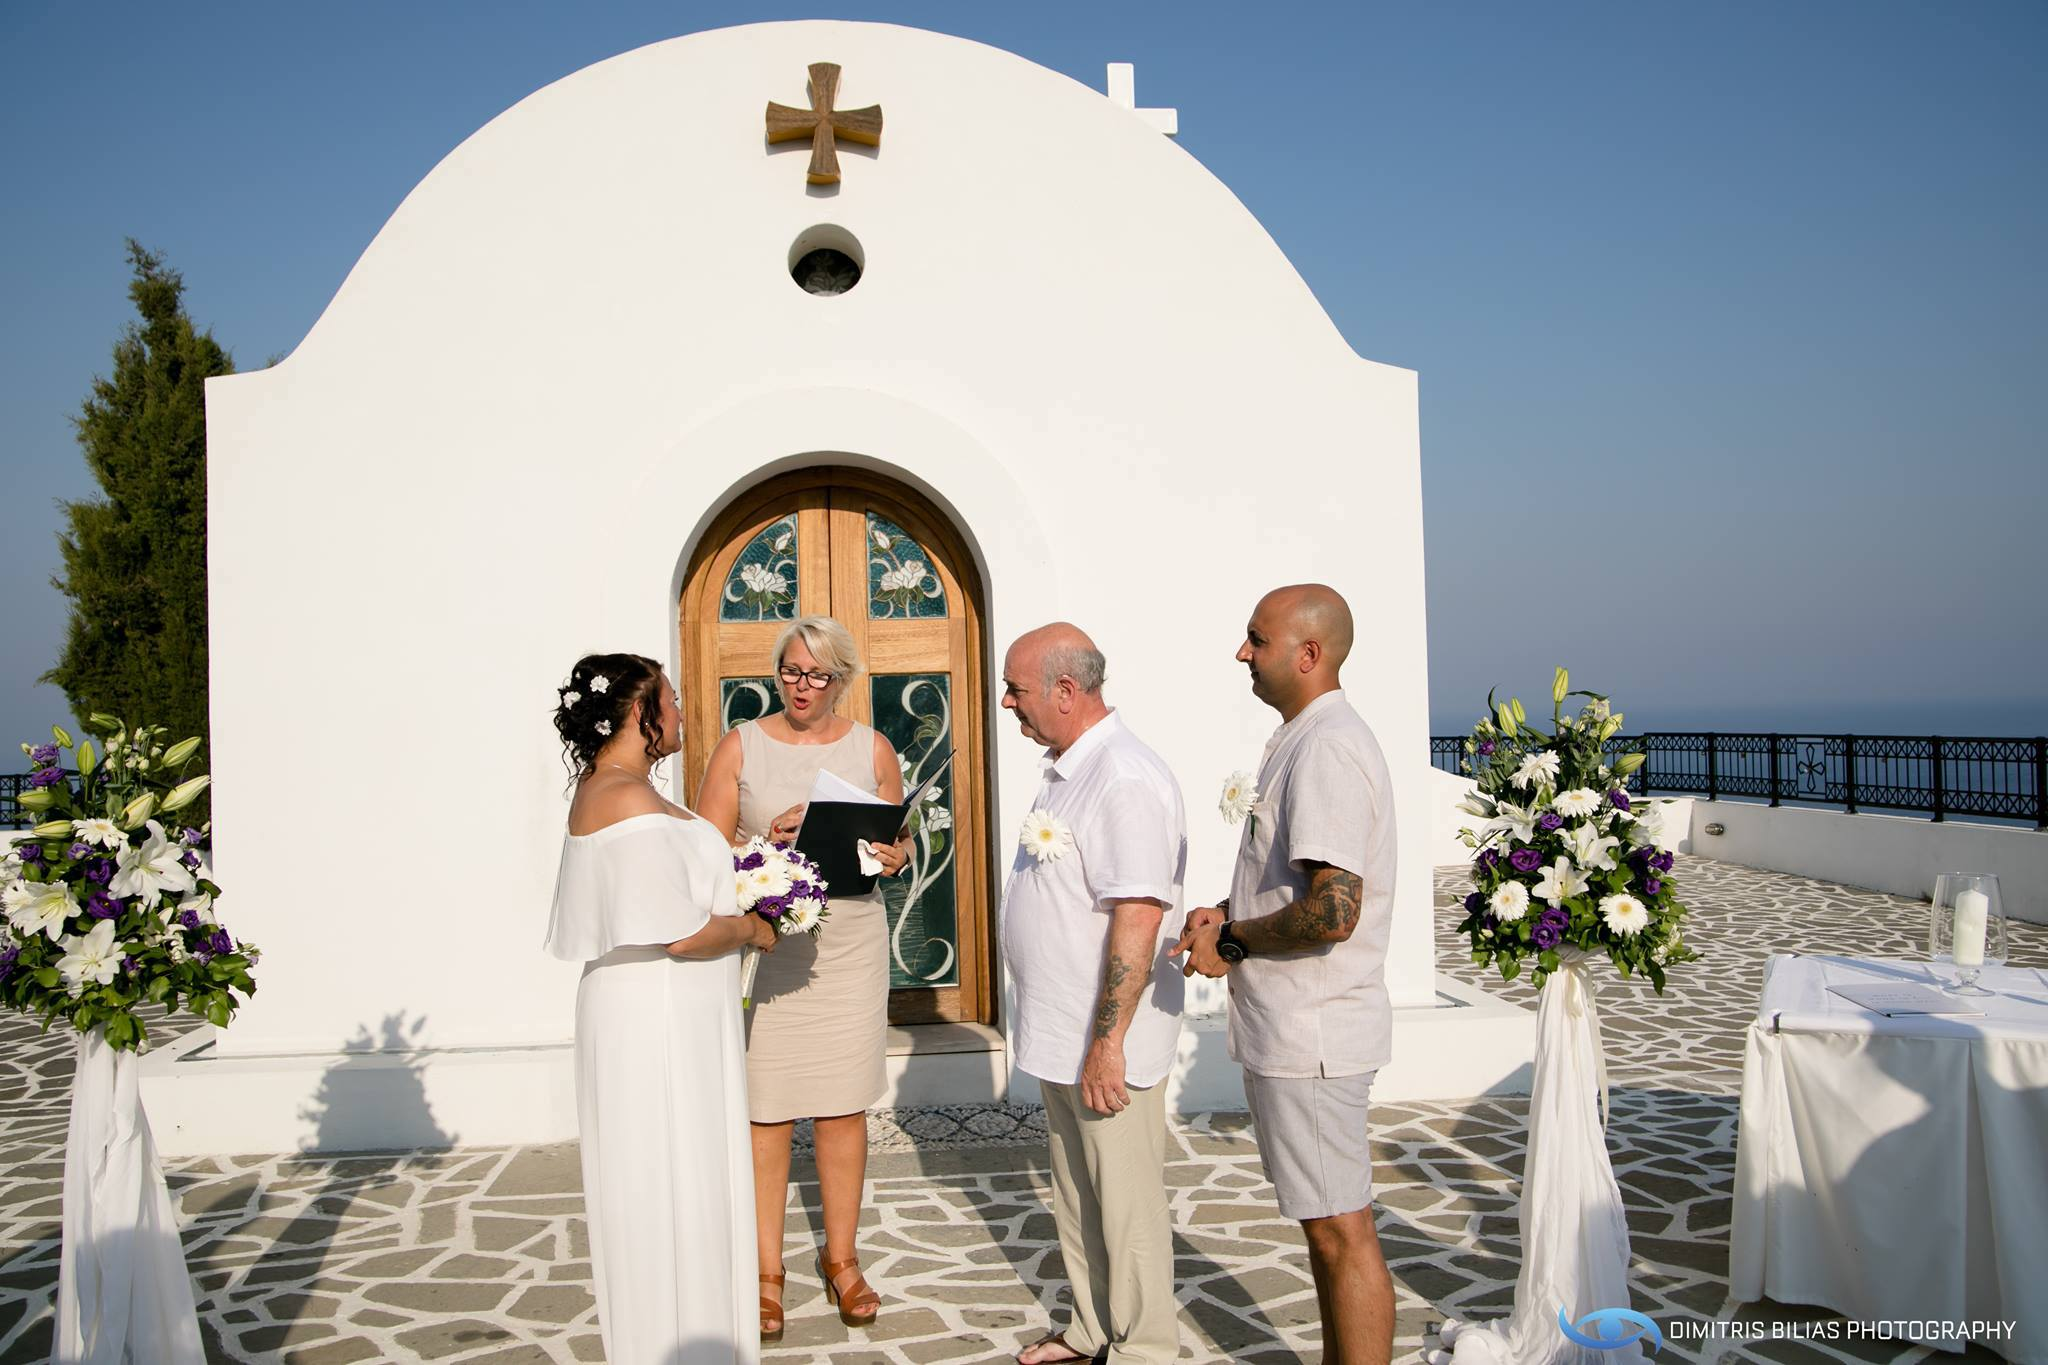 A couple stand in front of Aghia Sofia Chapel in Rhodes for their wedding ceremony in Greece. ECK - A wedding celebrant in Greece is conducting the ceremony as the son looks on.